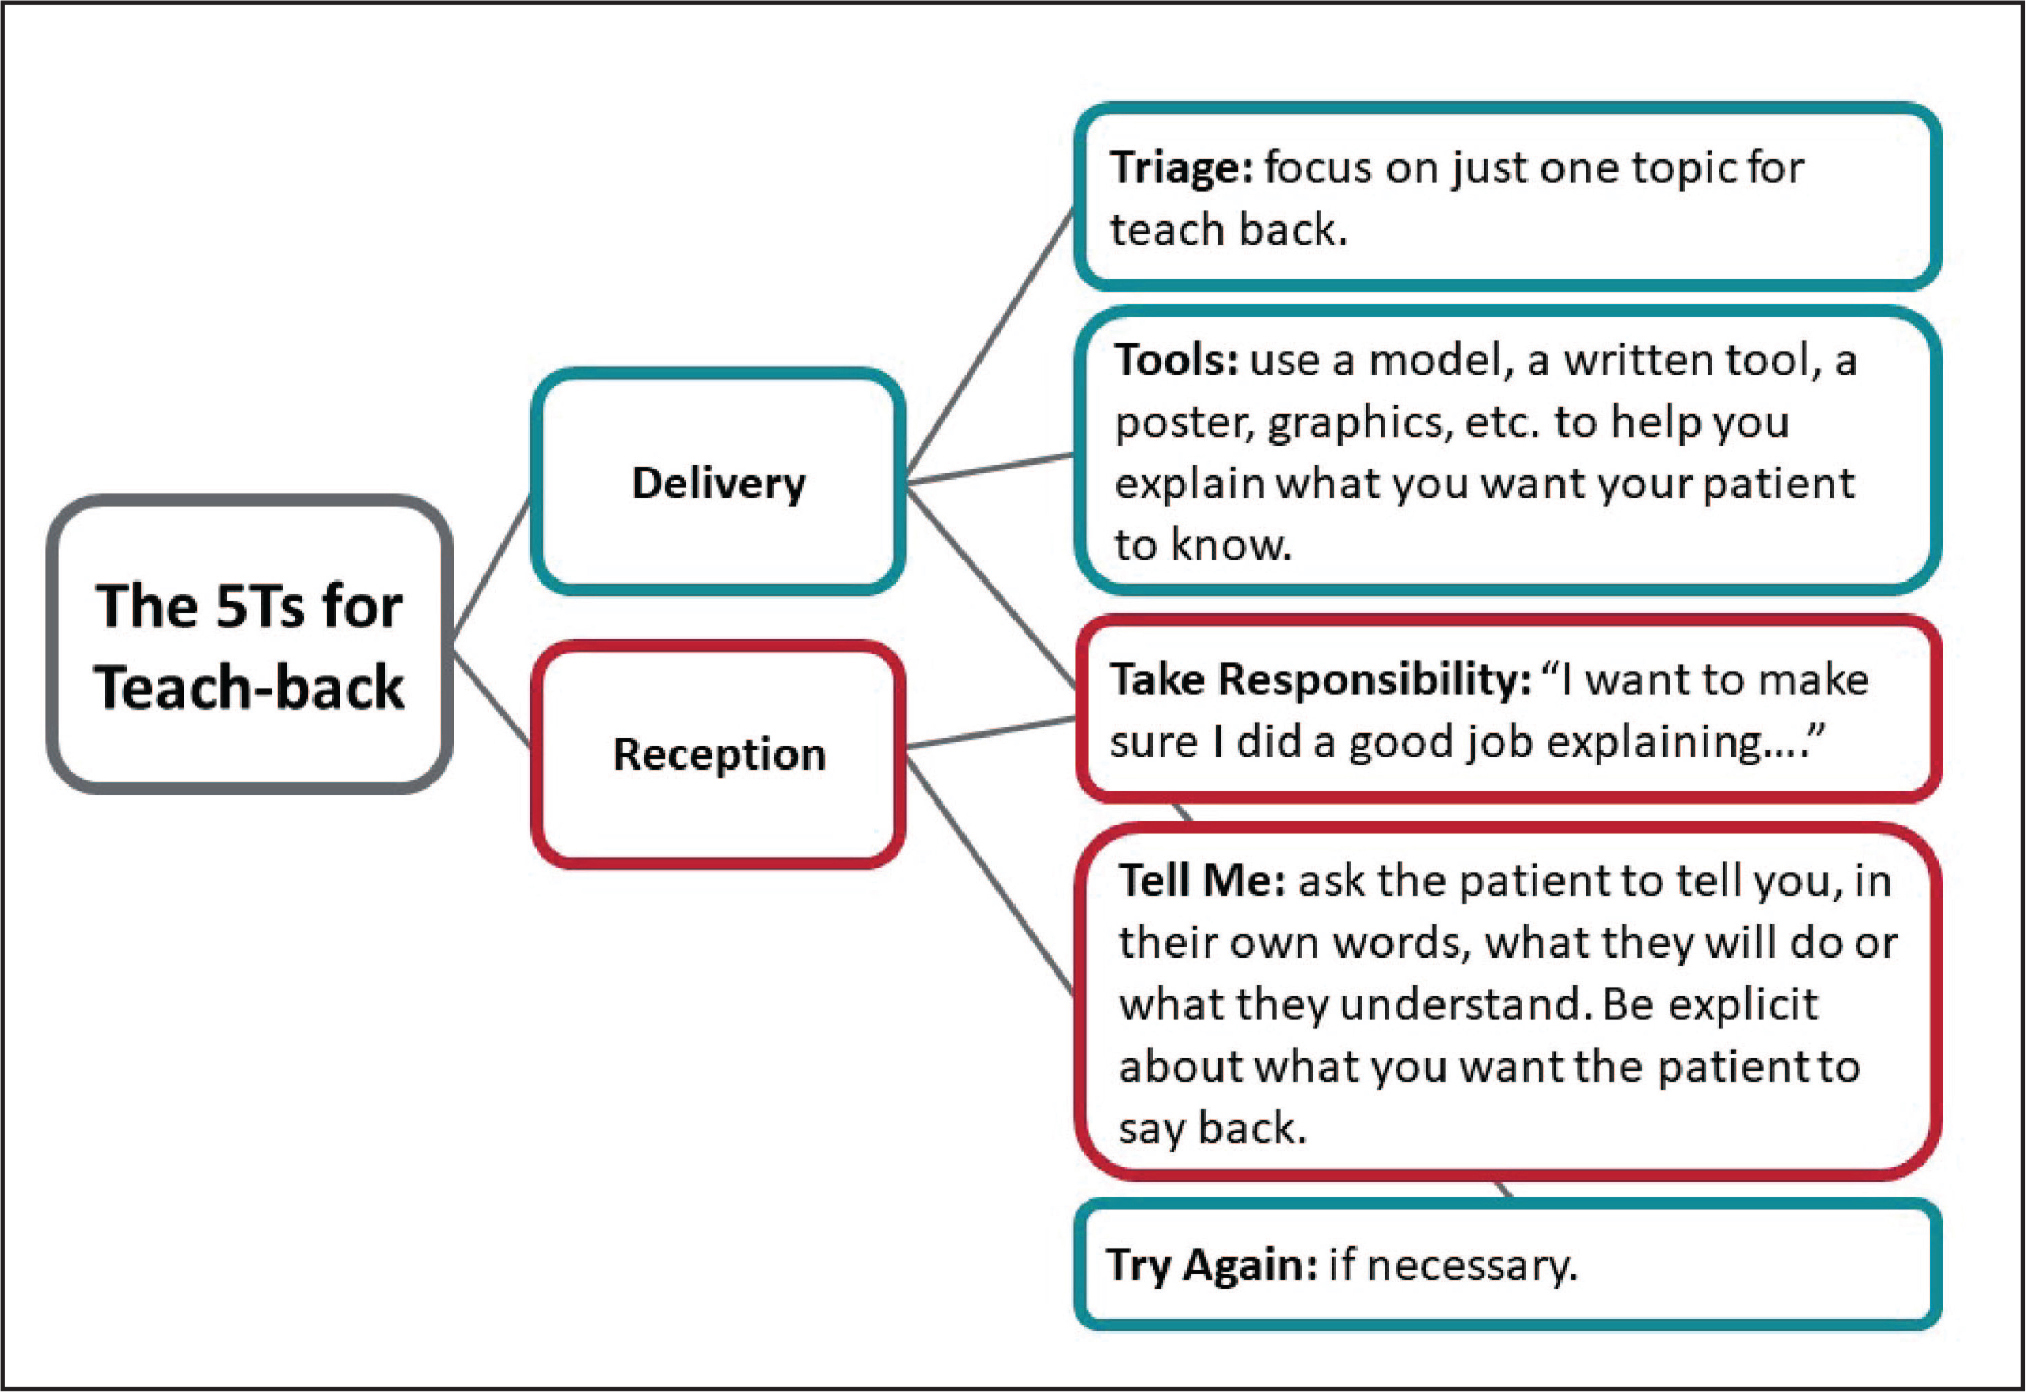 The 5Ts for Teach Back. Teach Back is about delivery and reception.